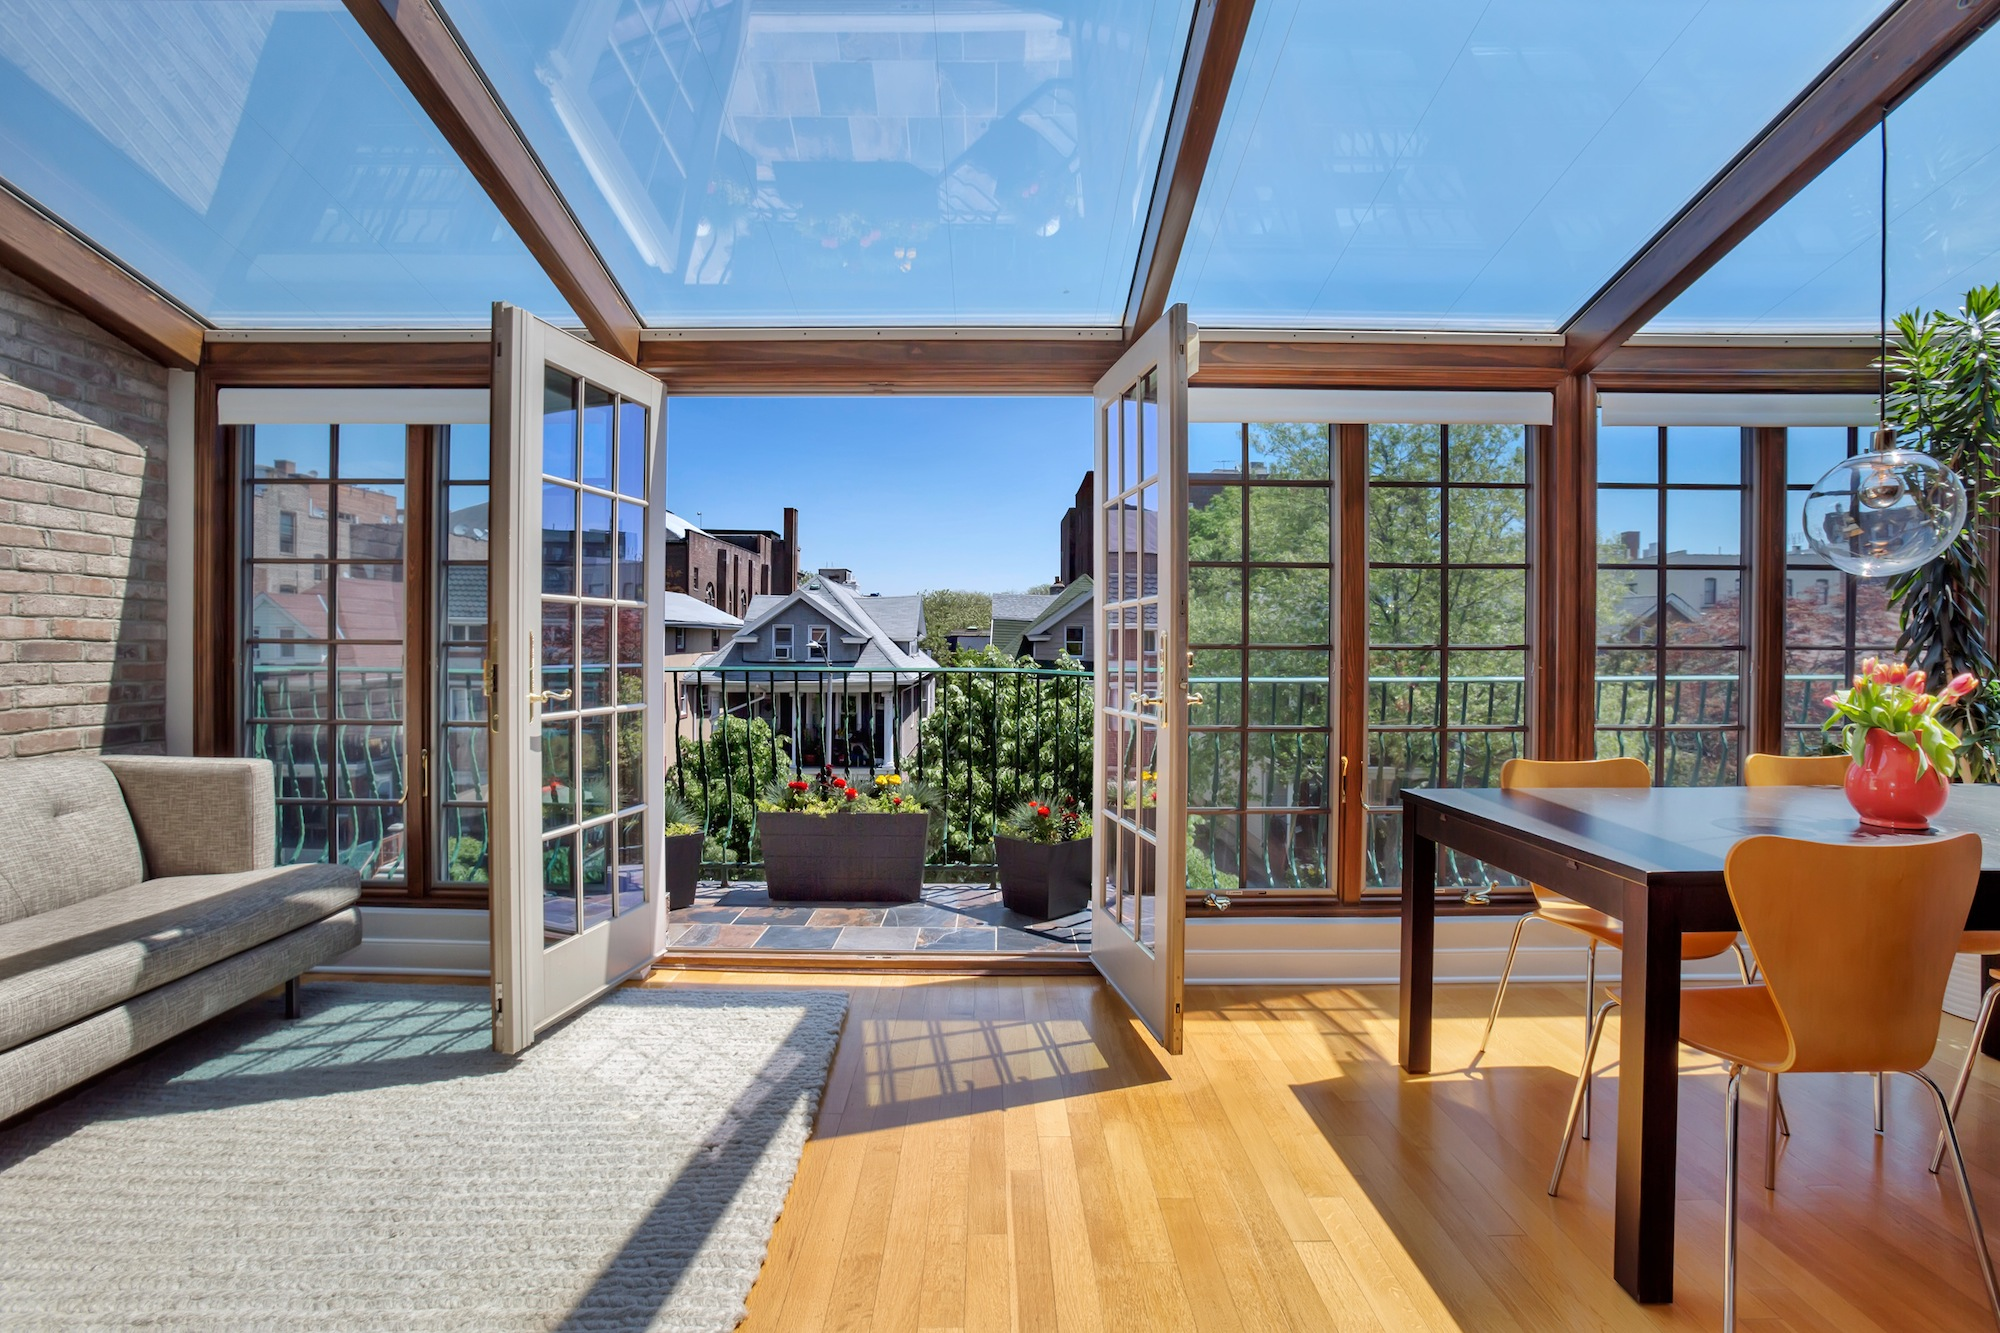 Delightful A Mini Solarium Brings Serious Sunlight To This $835K Kensington Apartment